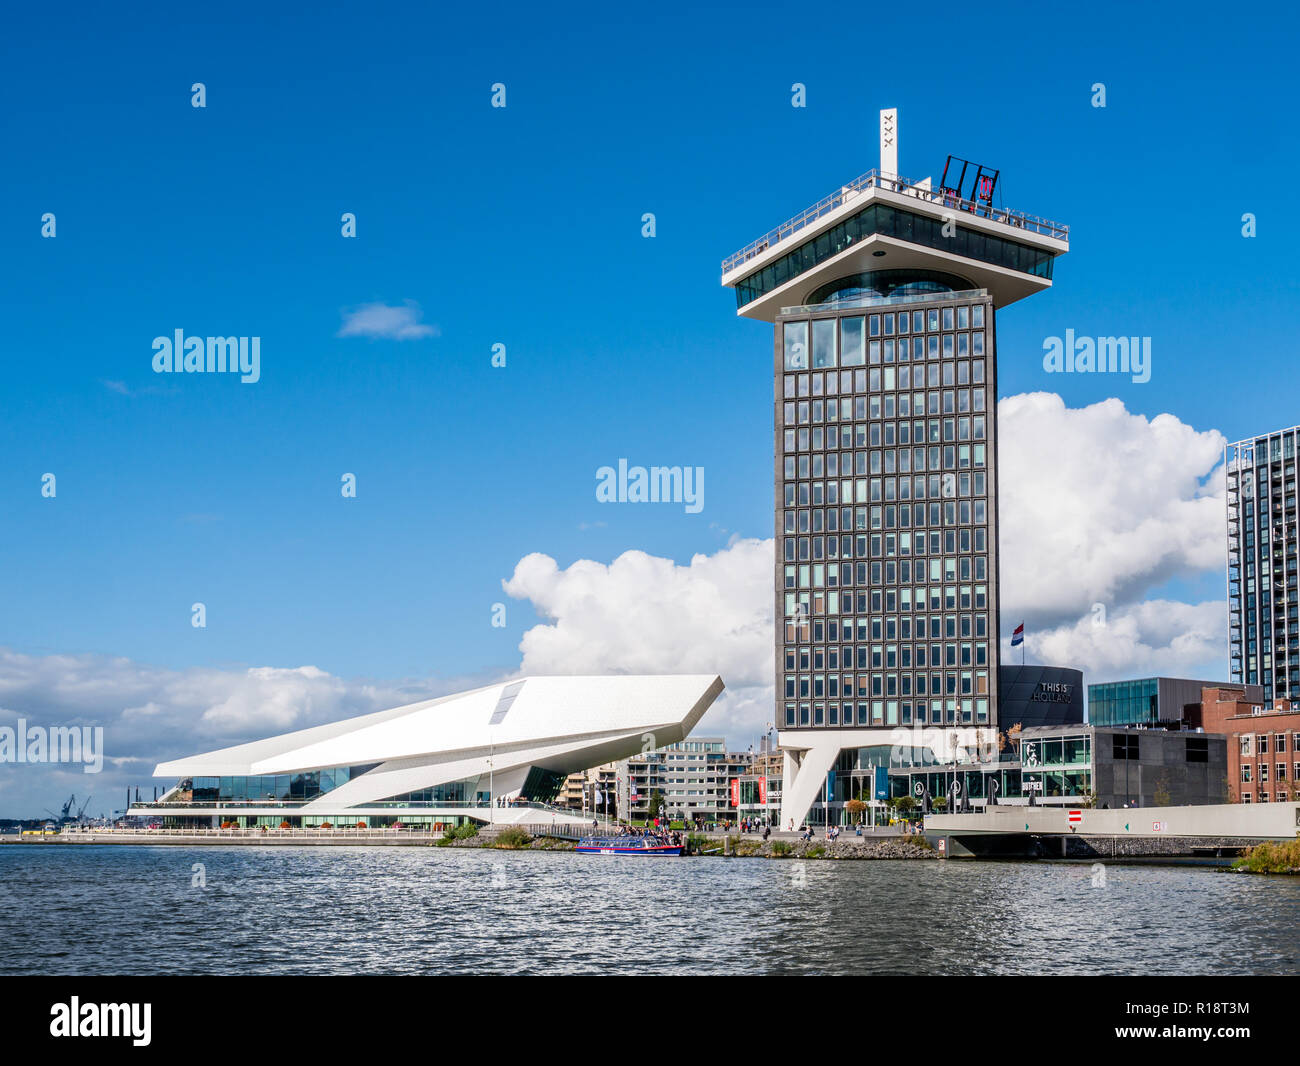 Adam Tower and Eye Filmmuseum from River IJ in Amsterdam, Netherlands - Stock Image